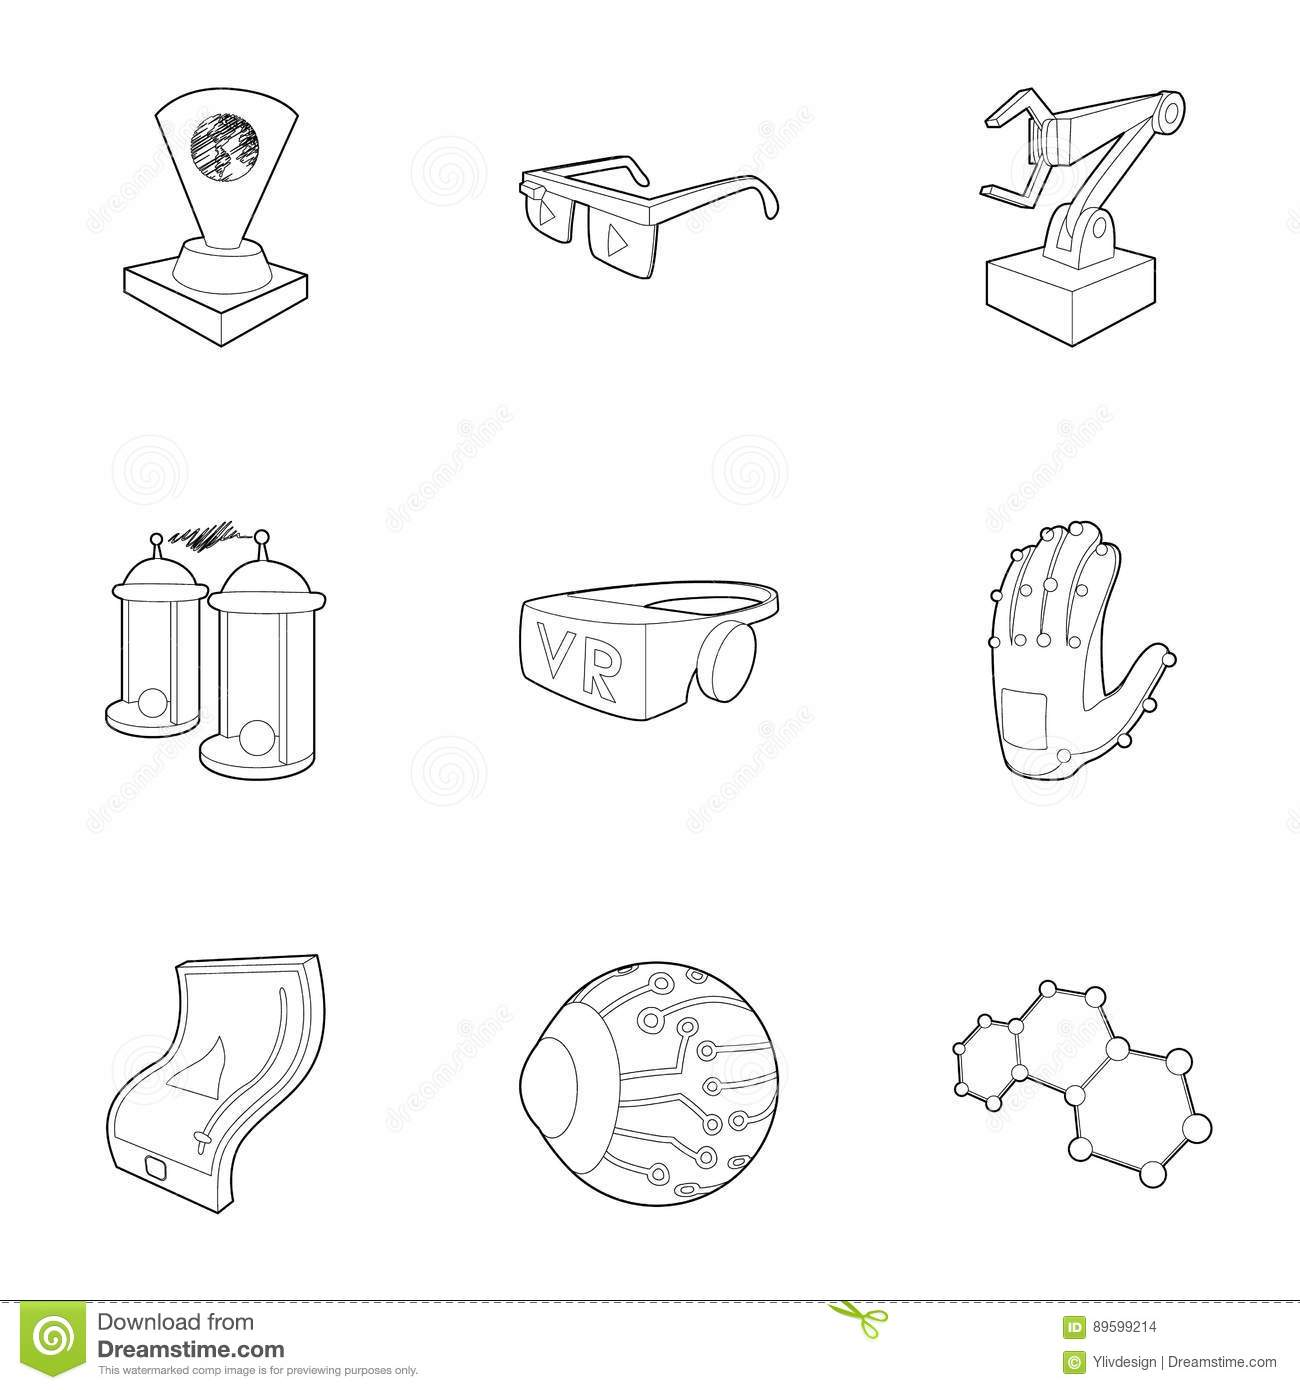 inductor cartoons  illustrations  u0026 vector stock images